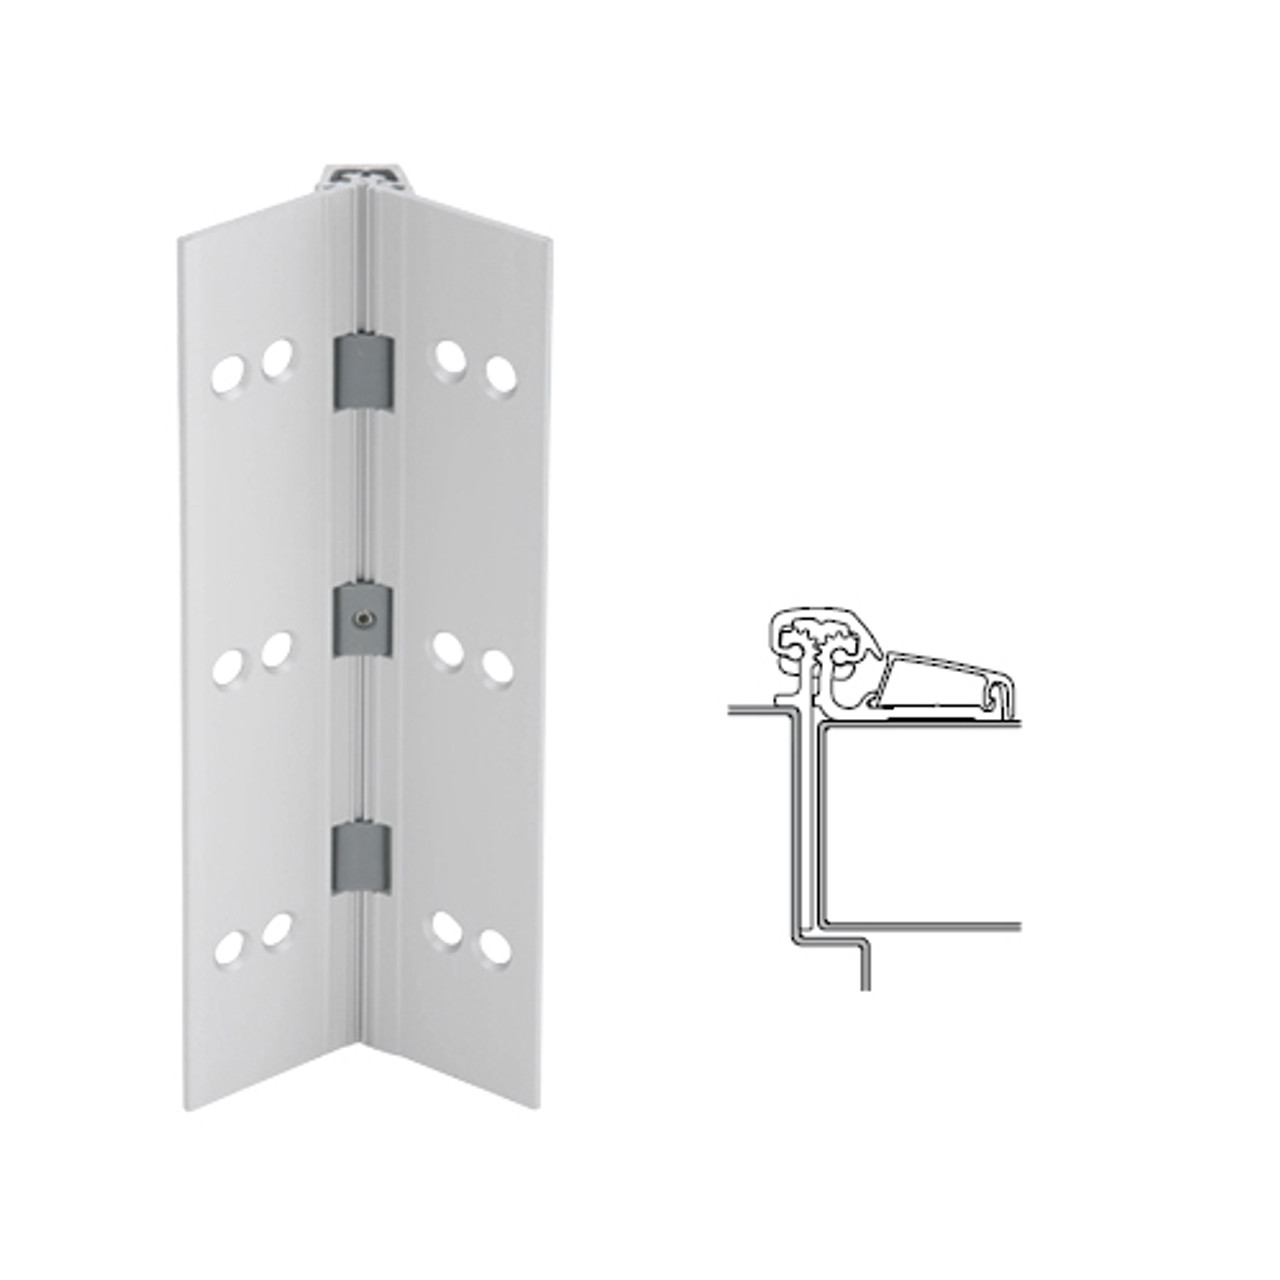 054XY-US28-83-TEKWD IVES Adjustable Half Surface Continuous Geared Hinges with Wood Screws in Satin Aluminum